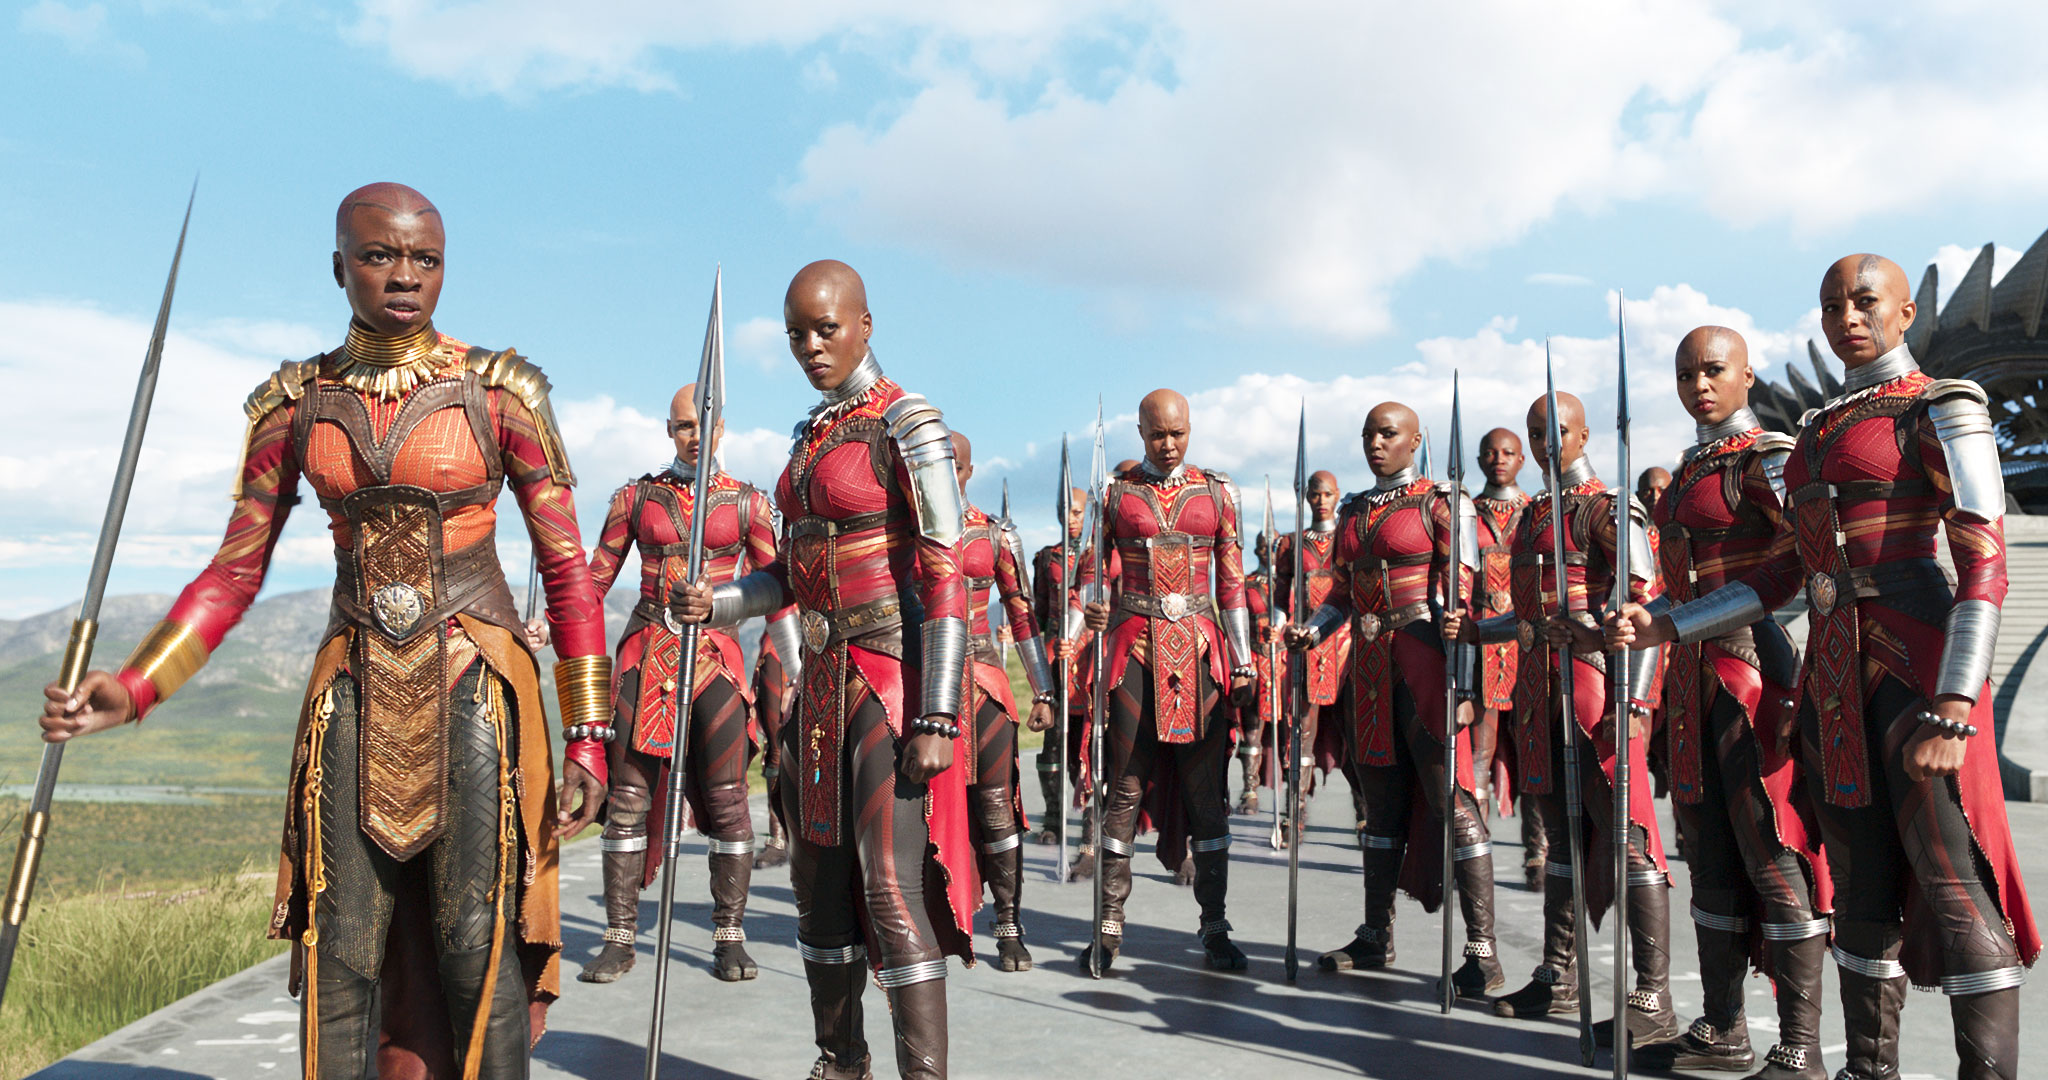 """Oscars 2019 Black Panther Costume Design - """"The Ballad of Buster Scruggs,"""" Mary Zophres """"Black Panther,"""" Ruth E. Carter """"The Favourite,"""" Sandy Powell """"Mary Poppins Returns,"""" Sandy Powell """"Mary Queen of Scots,"""" Alexandra Byrne"""